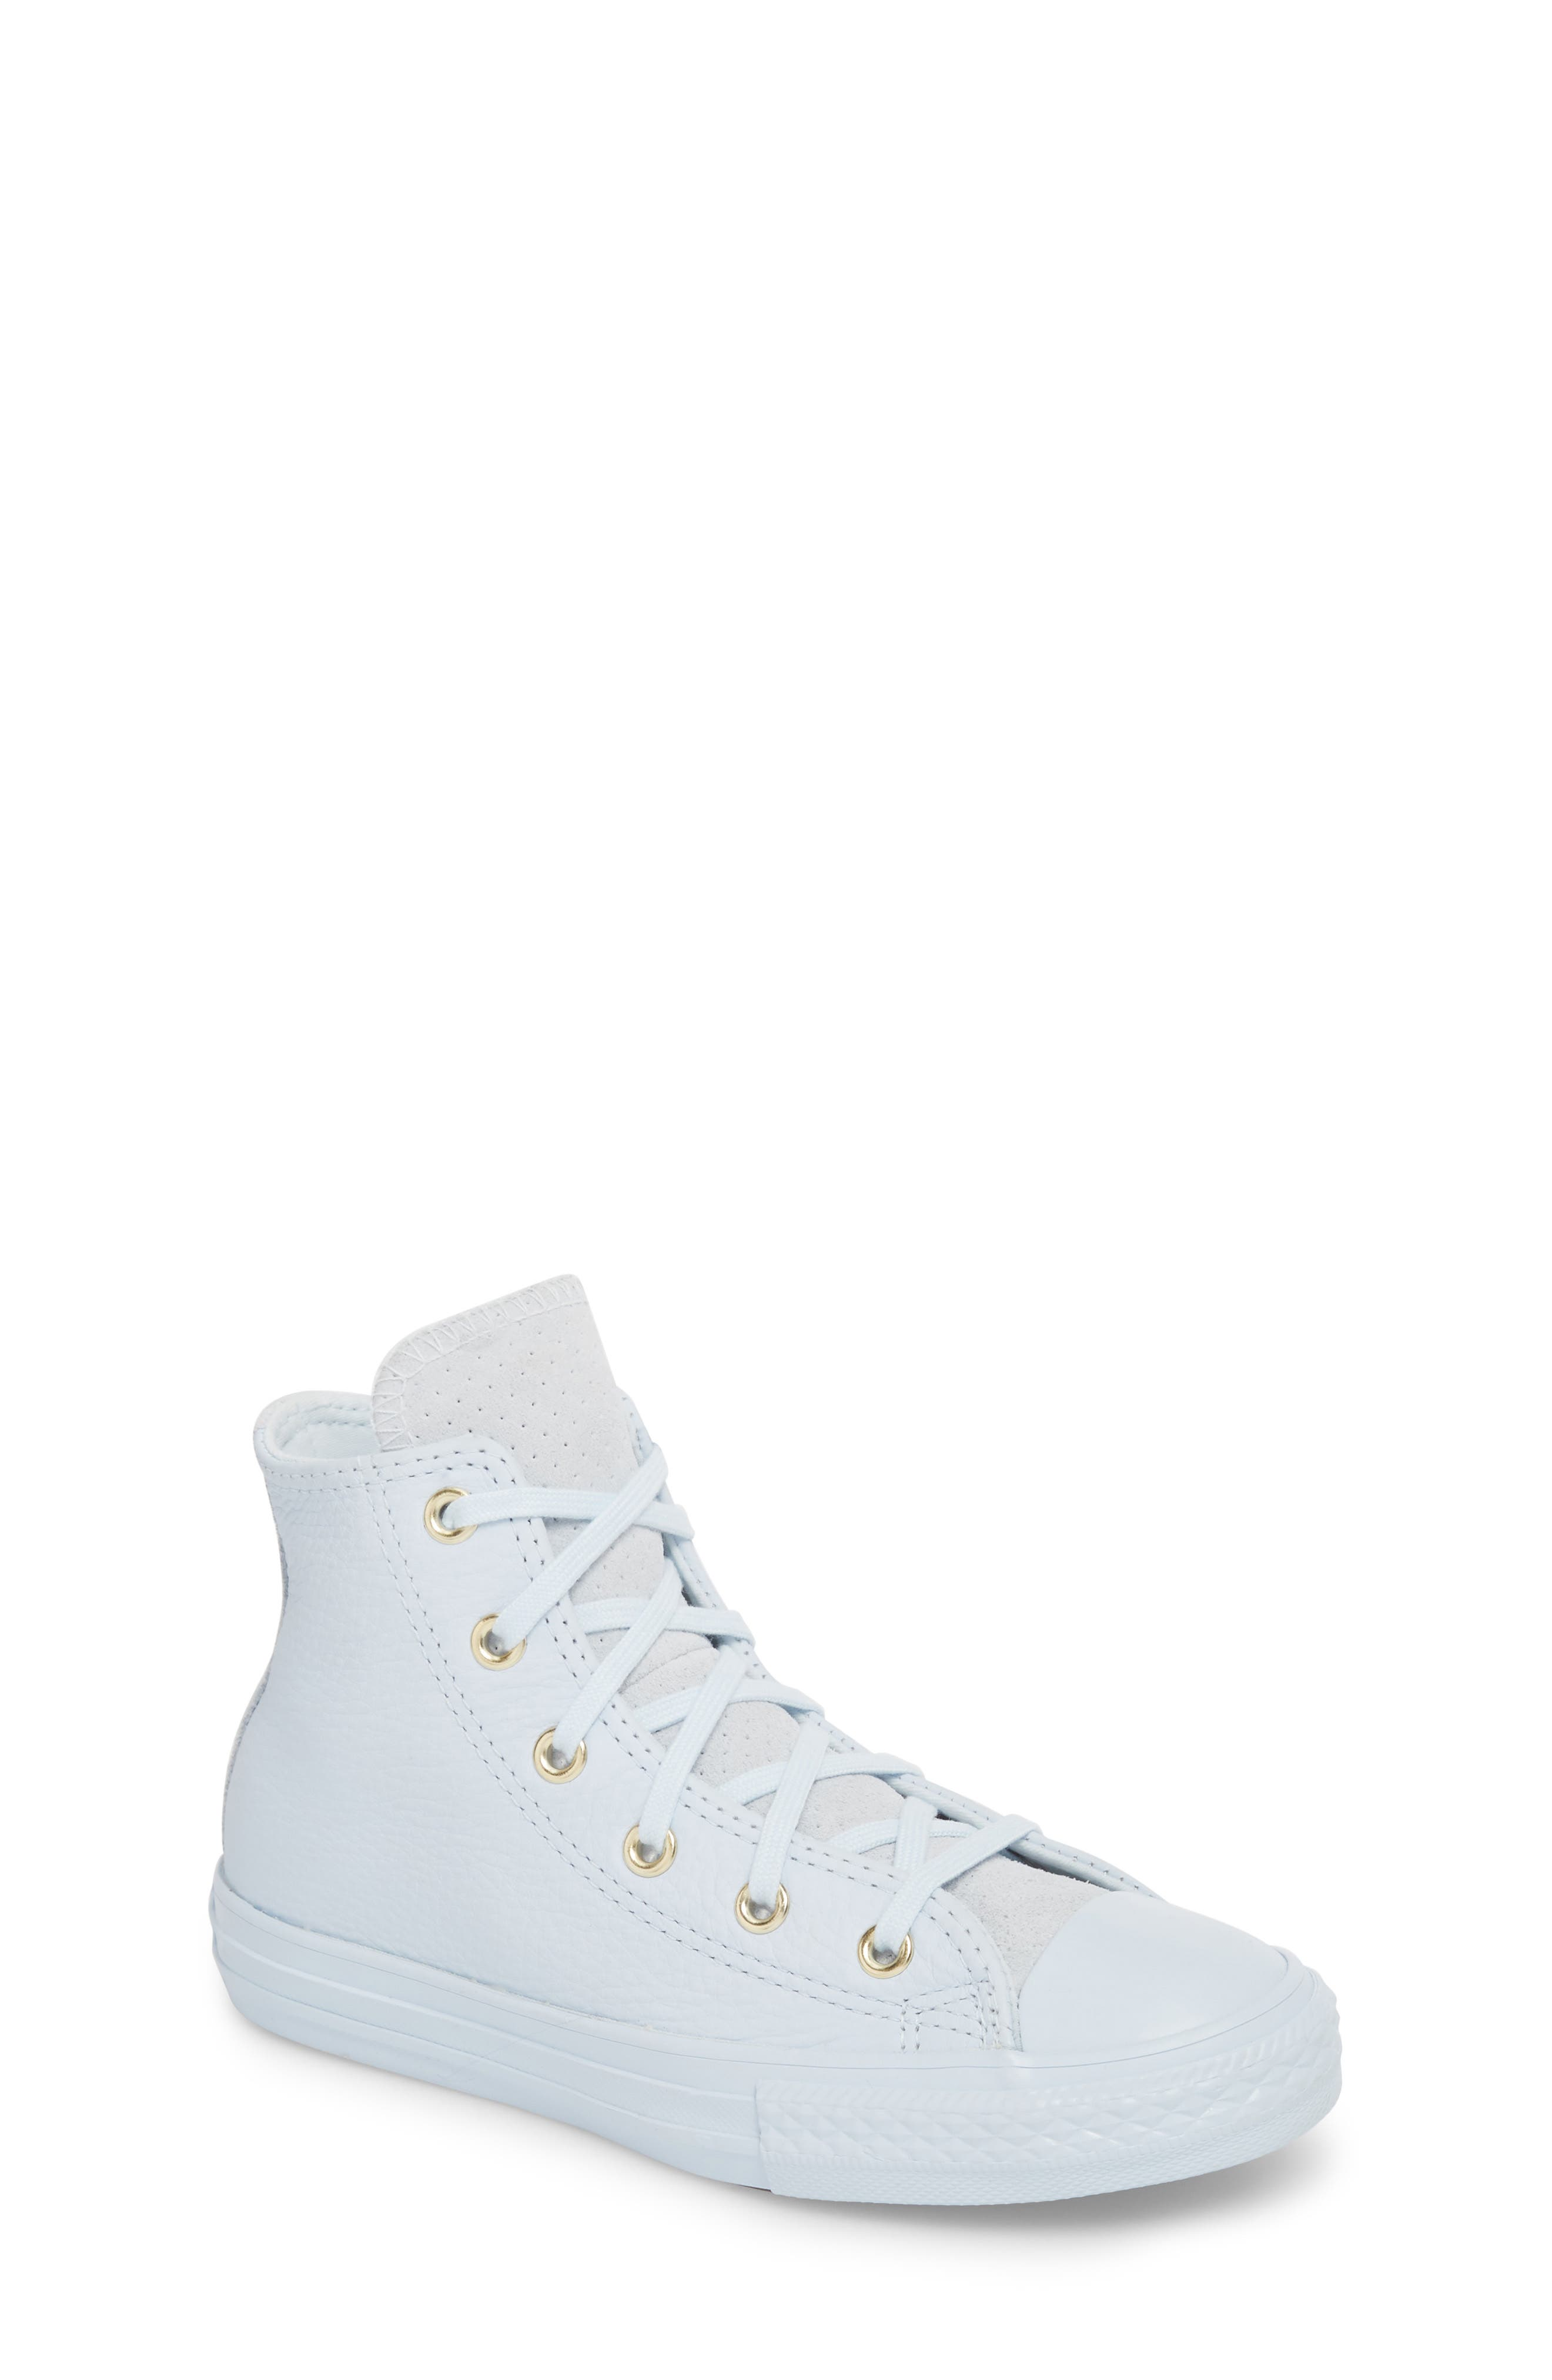 Chuck Taylor<sup>®</sup> All Star<sup>®</sup> Mono High Top Sneaker,                         Main,                         color, Blue Tint